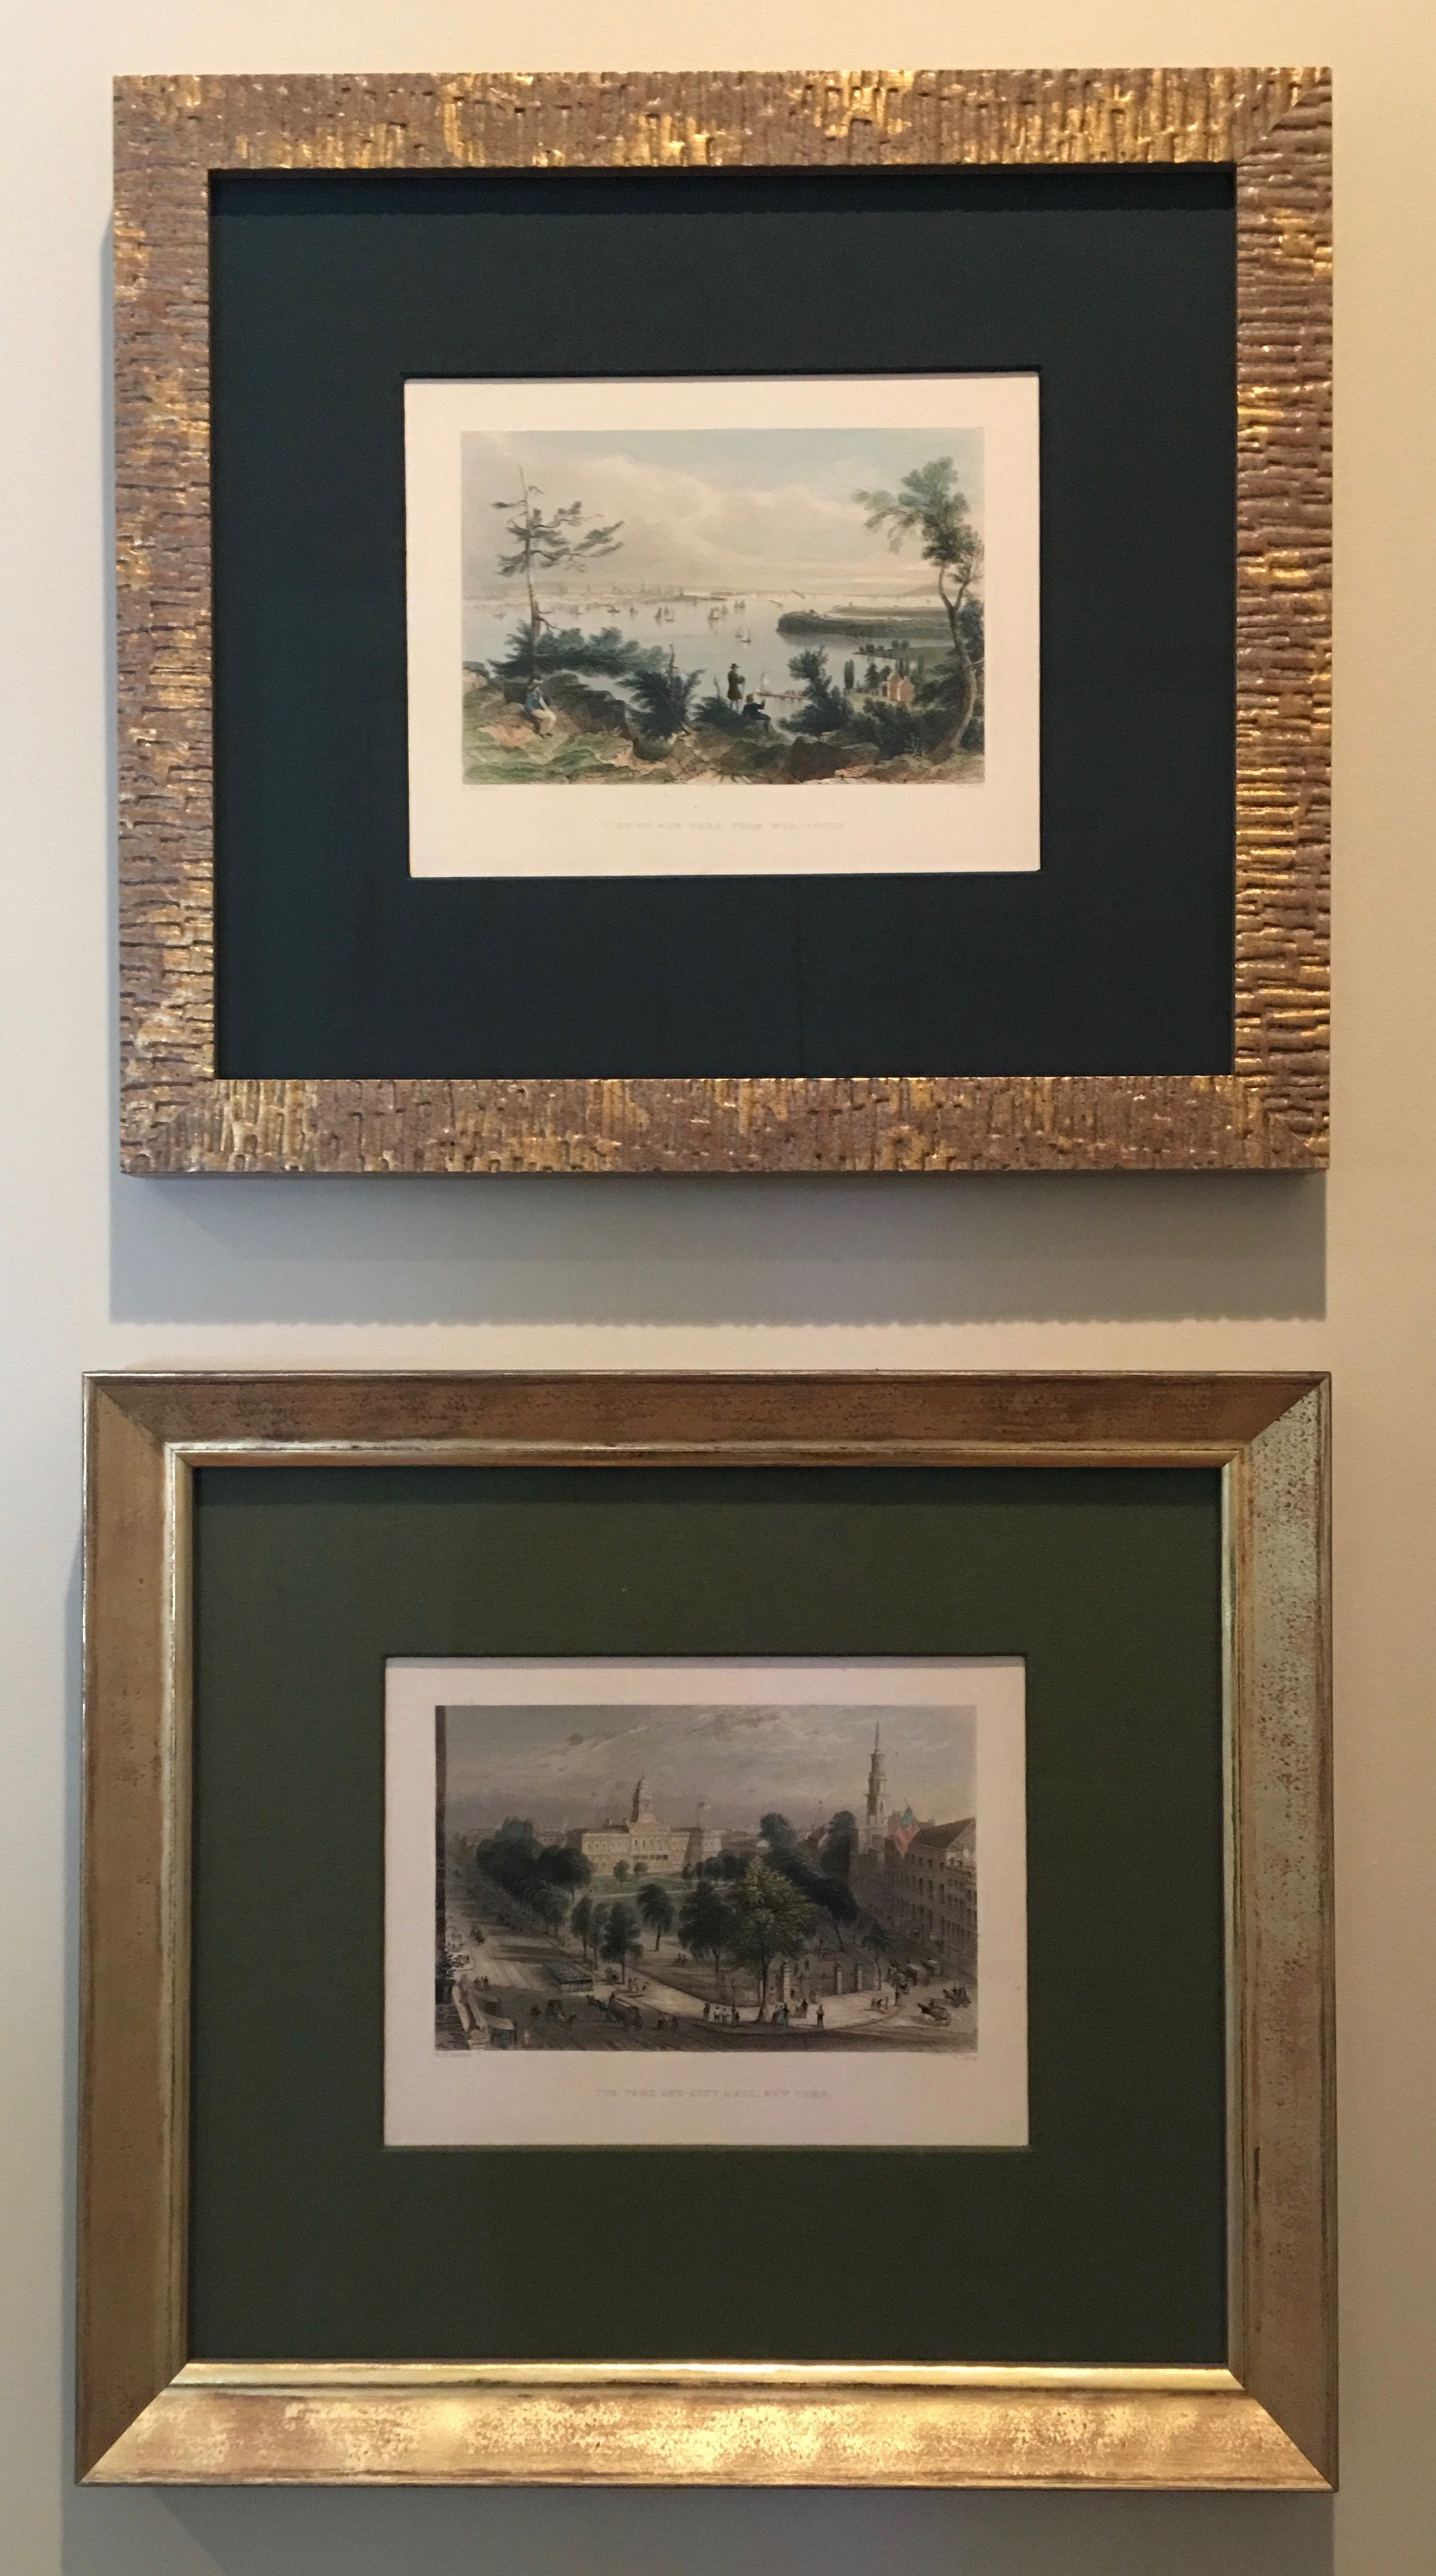 Brushed gold frames and two shades of green mattes accentuate these small intricate works.